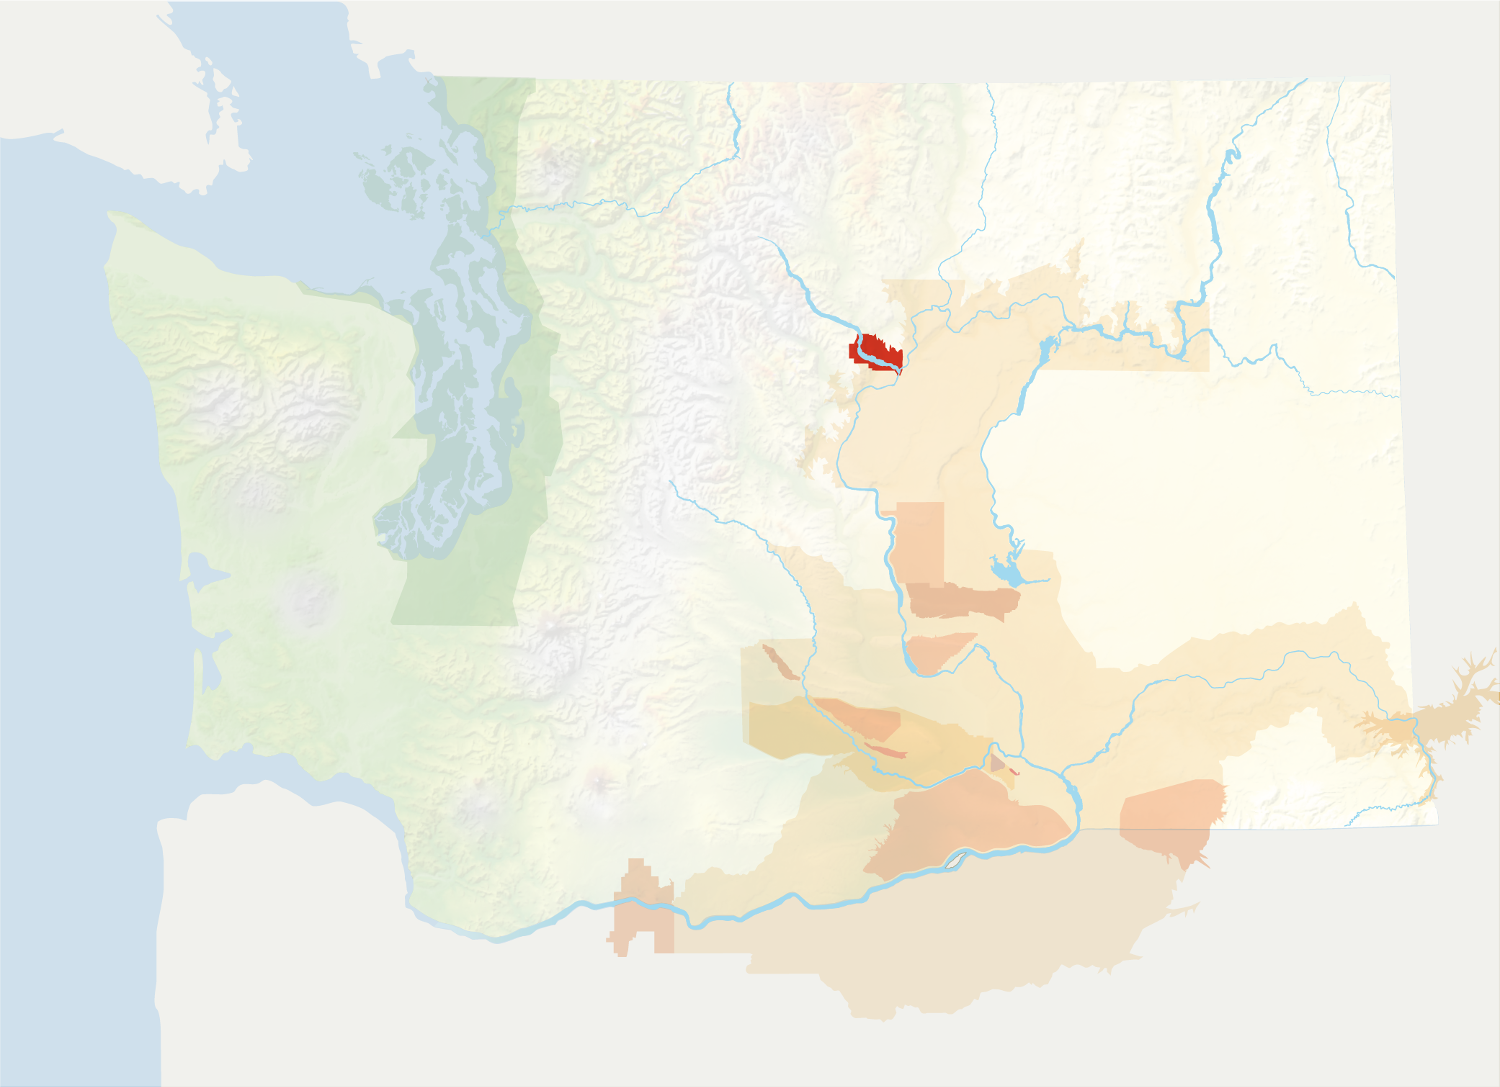 Map of Washington with the Lake Chelan AVA in red, surrounded by the rest of the AVAs in muted greens and oranges.